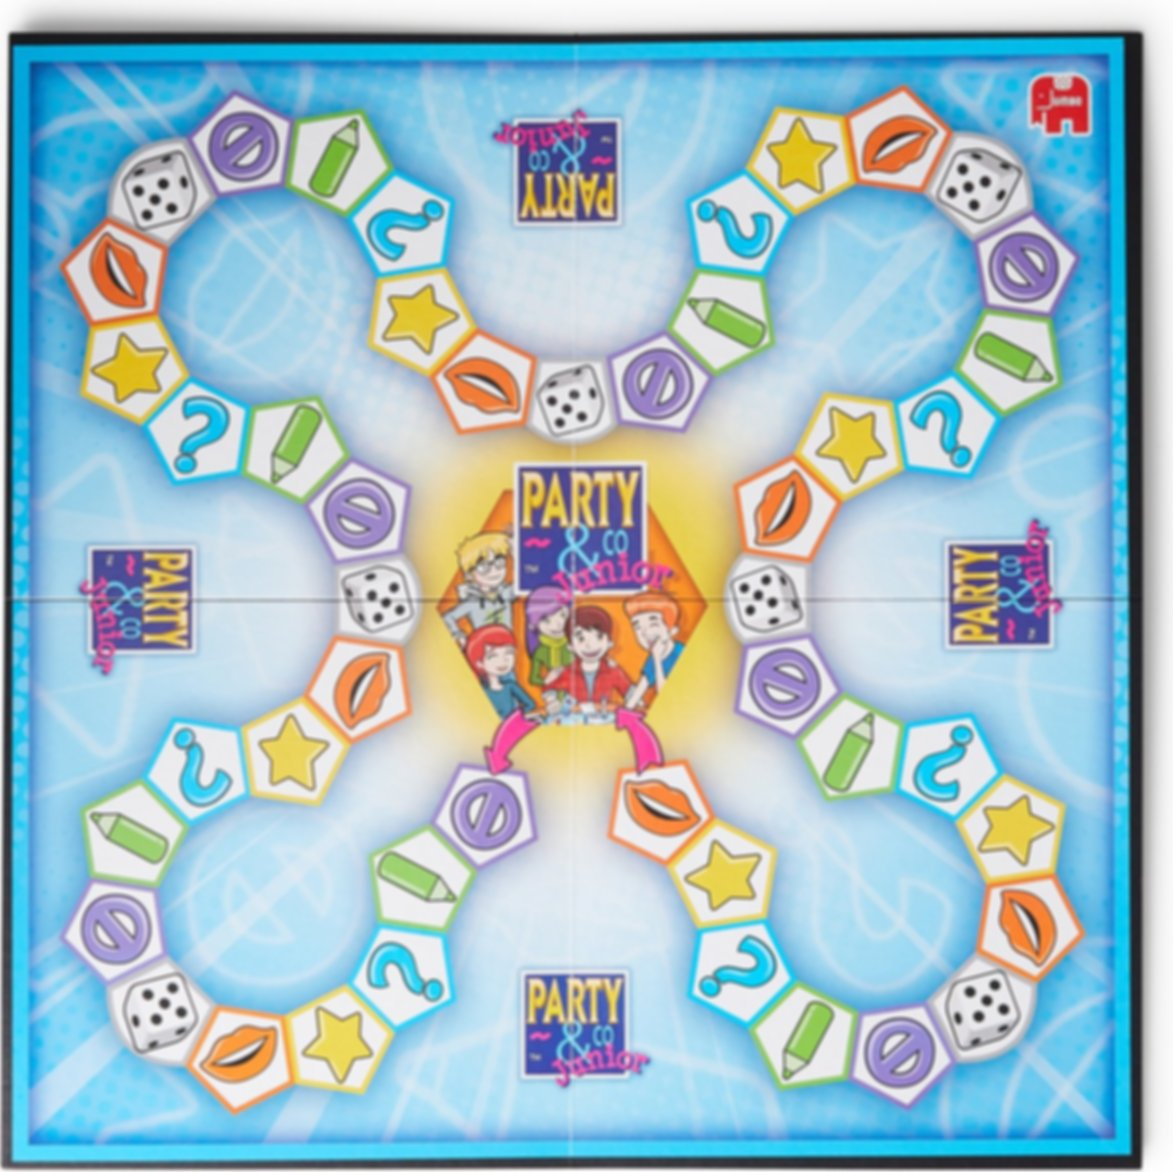 Jumbo Party & Co Junior game board